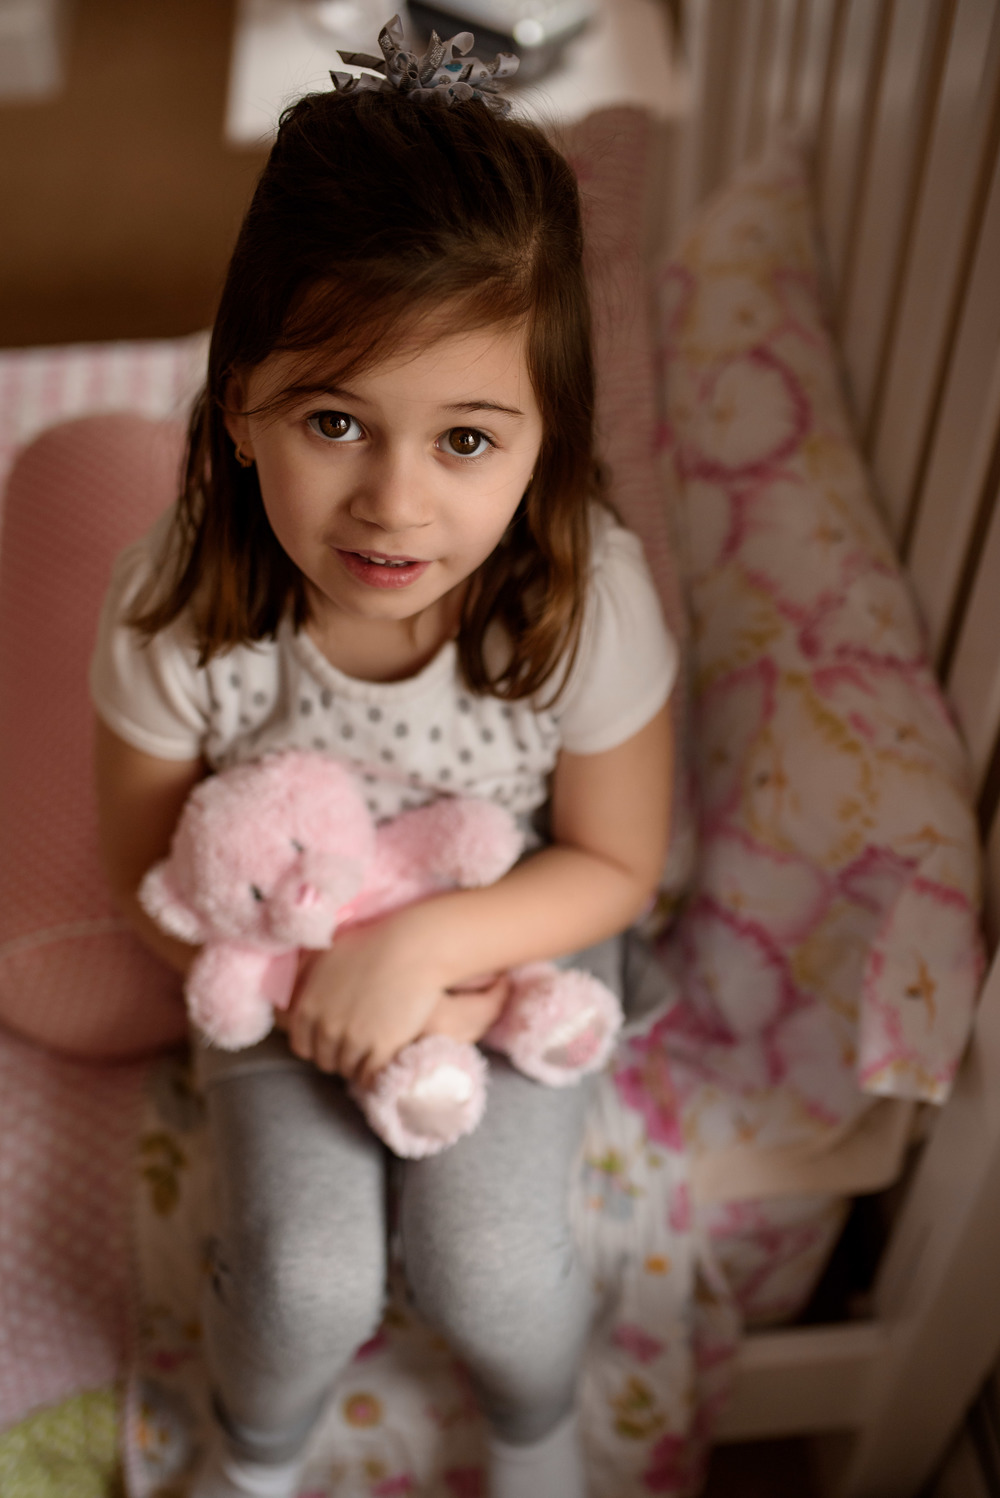 Daughter With Teddy Bear